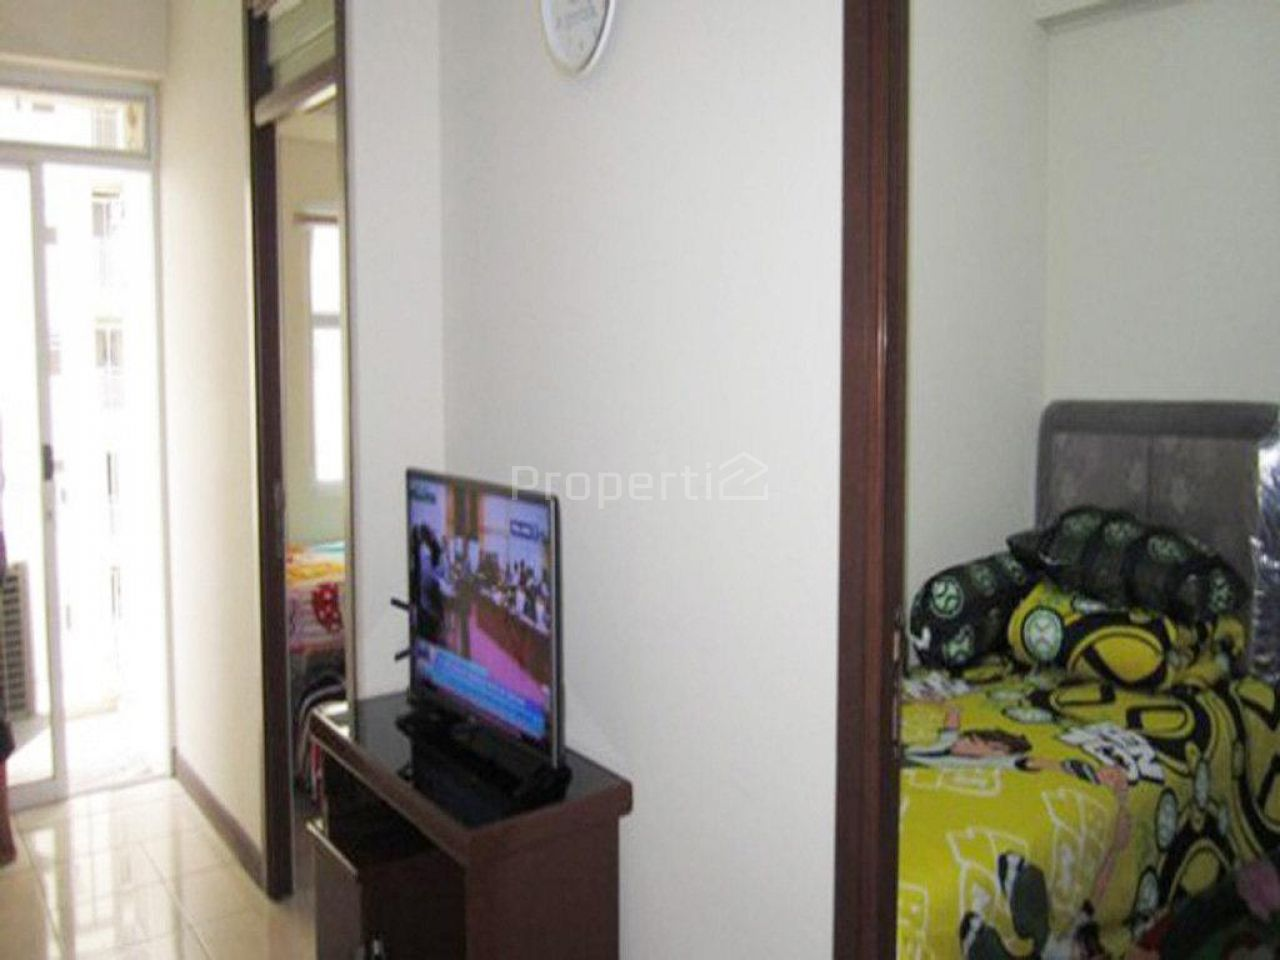 2 BR Unit, 9th Floor, Maldives Tower Pluit Seaview Apartment, DKI Jakarta